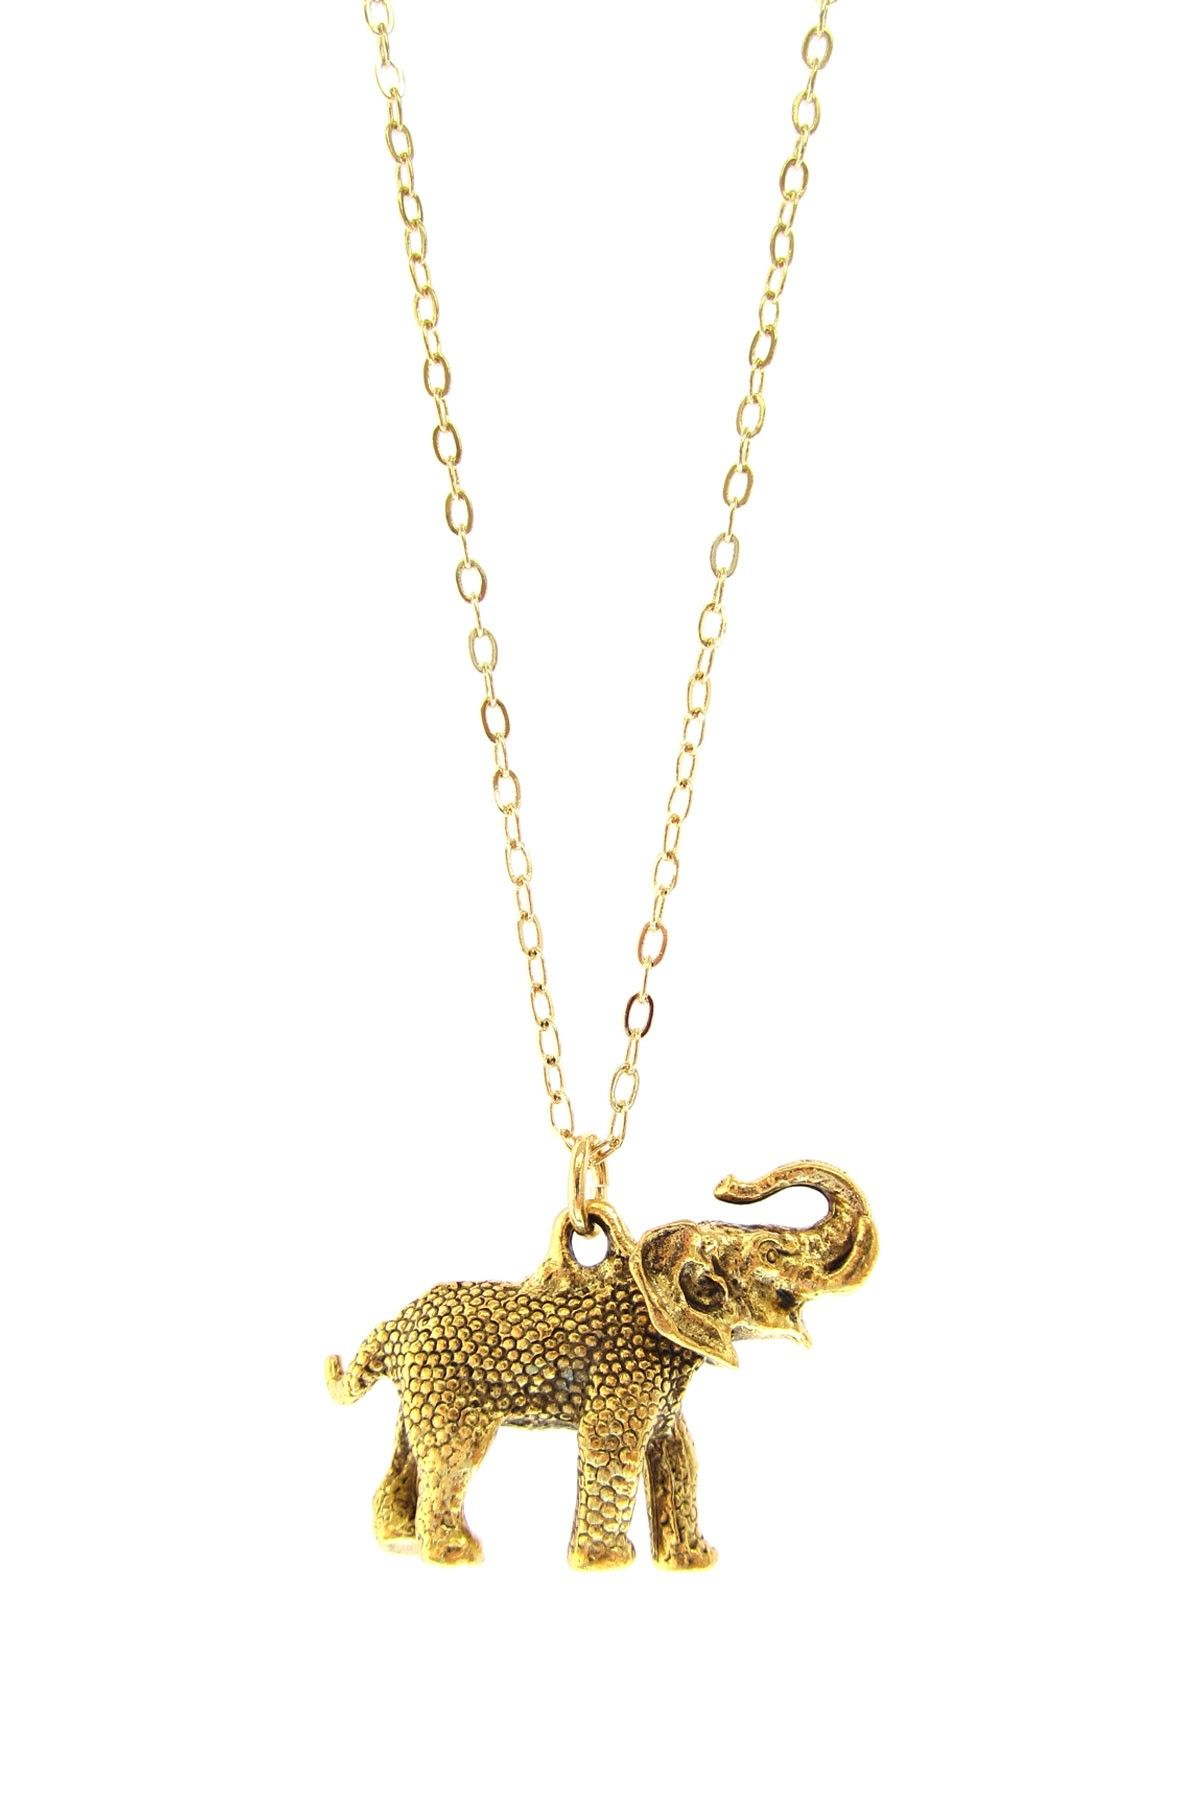 Charm Necklaces by Jami Rodriguez  Long Gold Elephant Necklace  $19.00